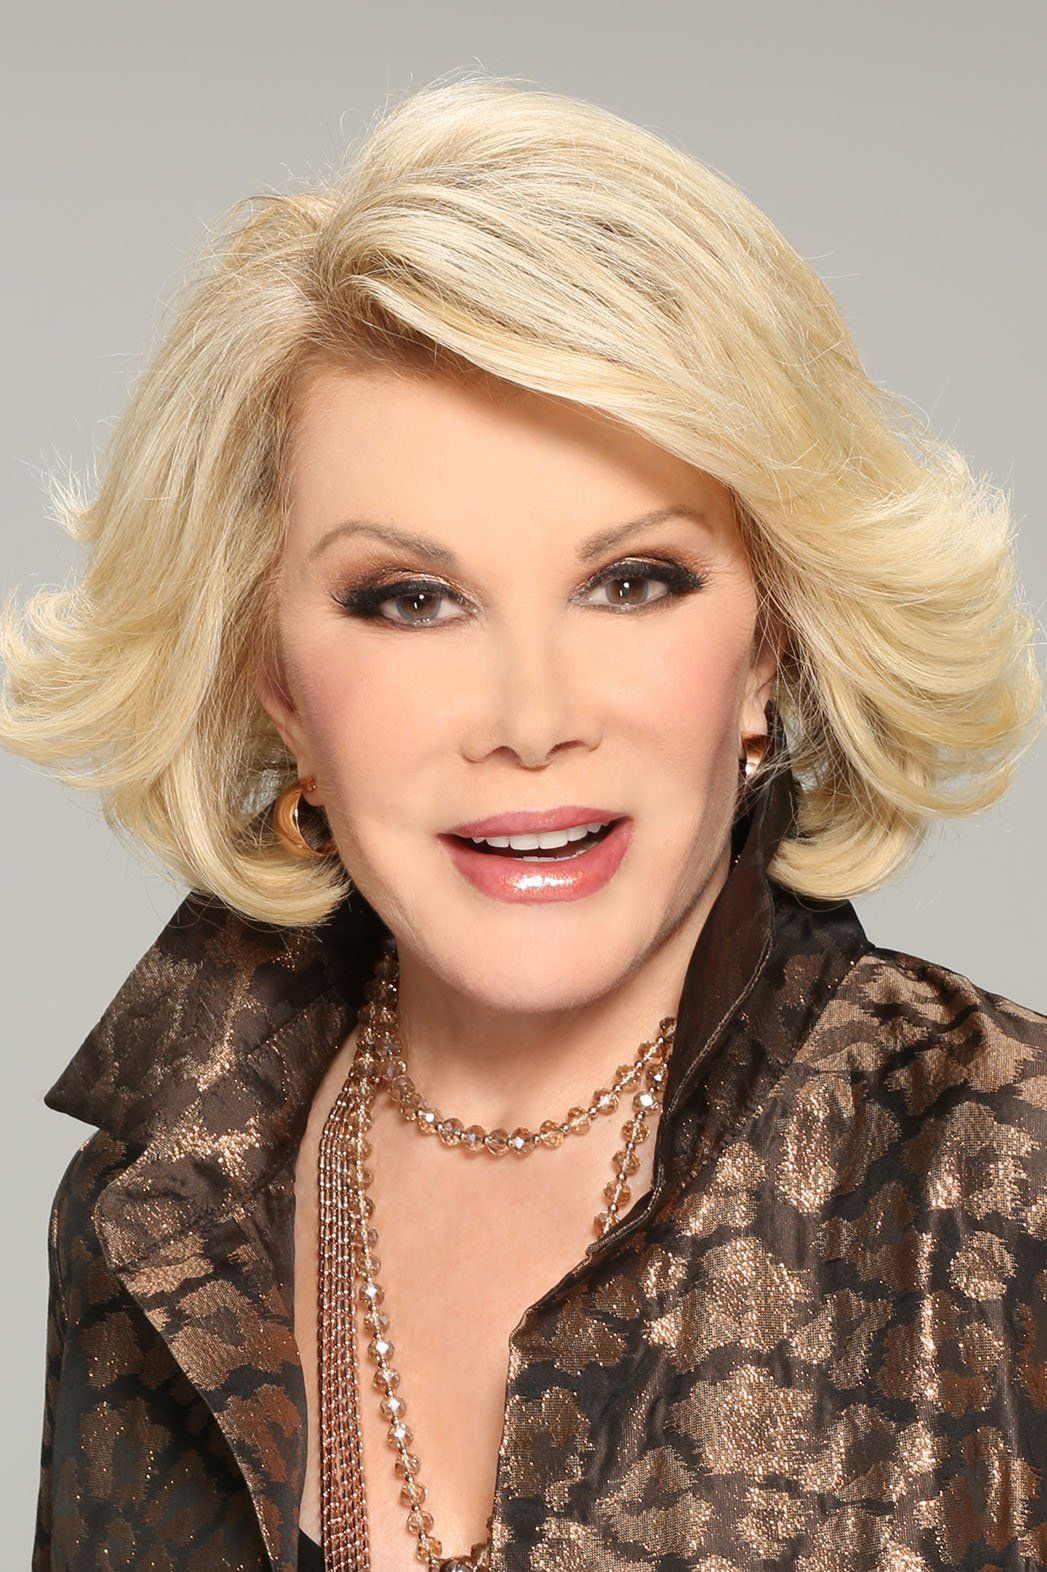 Throughout her decades-long career as a comic, actress, author, entrepreneur, television host, and playwright, Joan Rivers  (neé  Joan Alexandra Molinsky) ,exhibited an extraordinary personal fortitude that helped solidify her position as a polymath of American culture. Fiercely intelligent and always outspoken, her style and elegance were perfect foils to the transgressive, comedic bravura that defned her public persona.